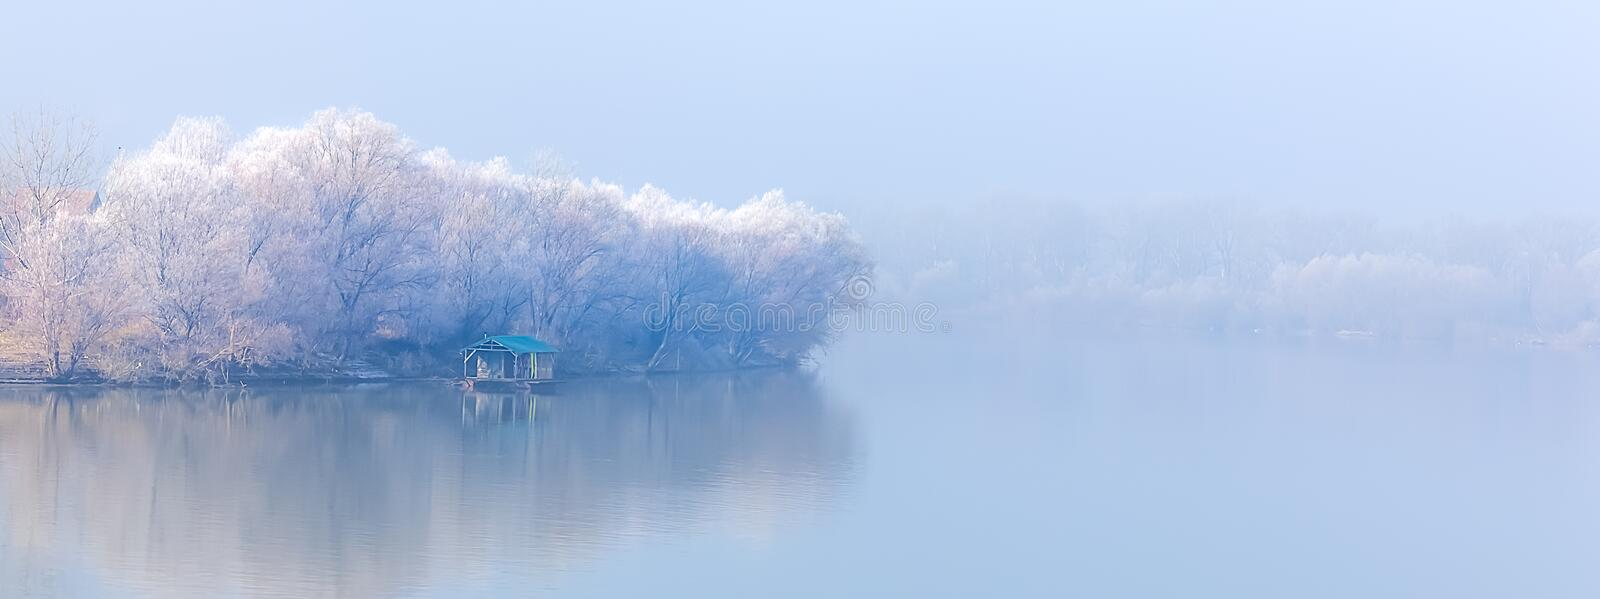 River coast on misty morning royalty free stock images